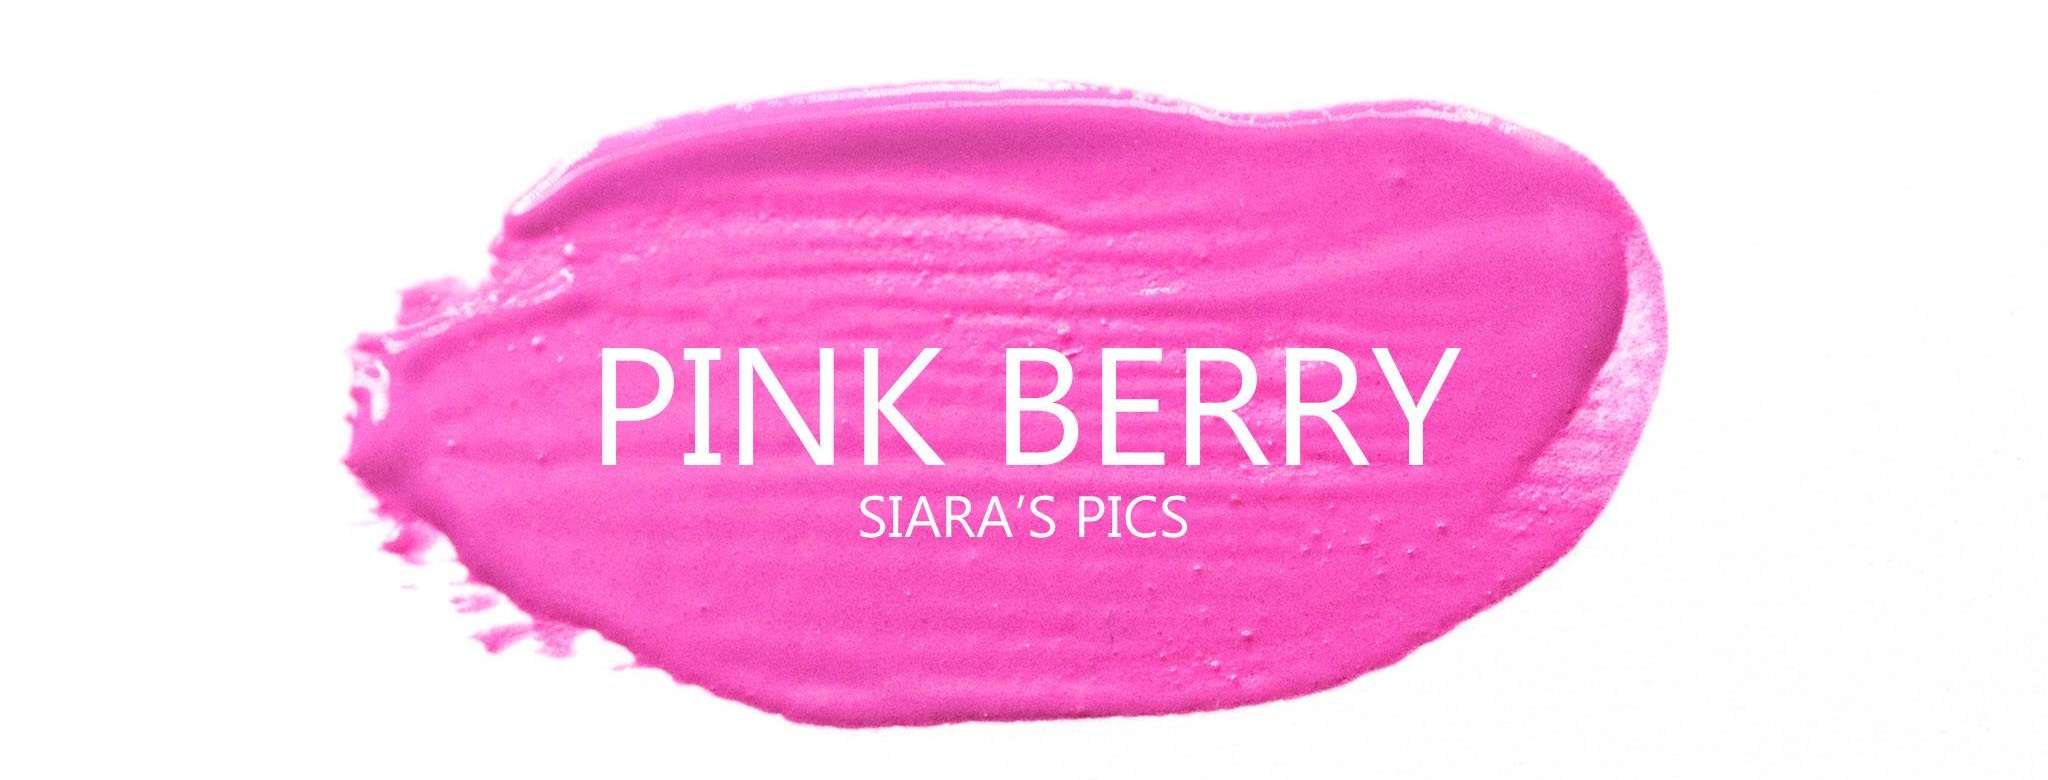 Pink Berry Blush